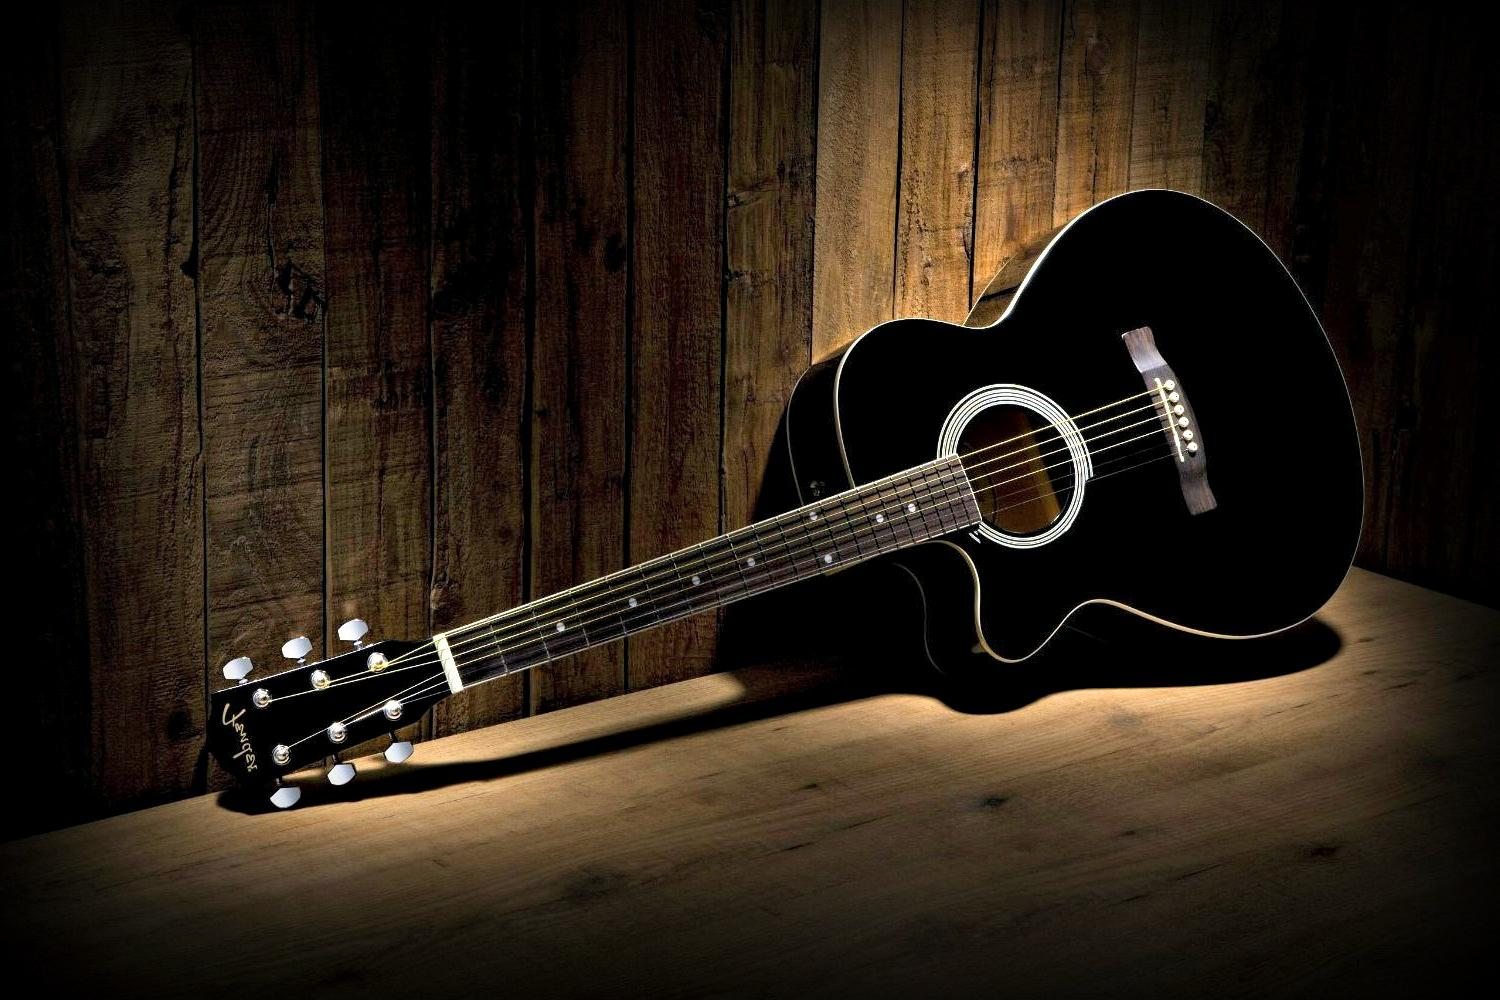 Black Guitar Wallpaper Photos 58787 1500x1000 px HDWallSourcecom